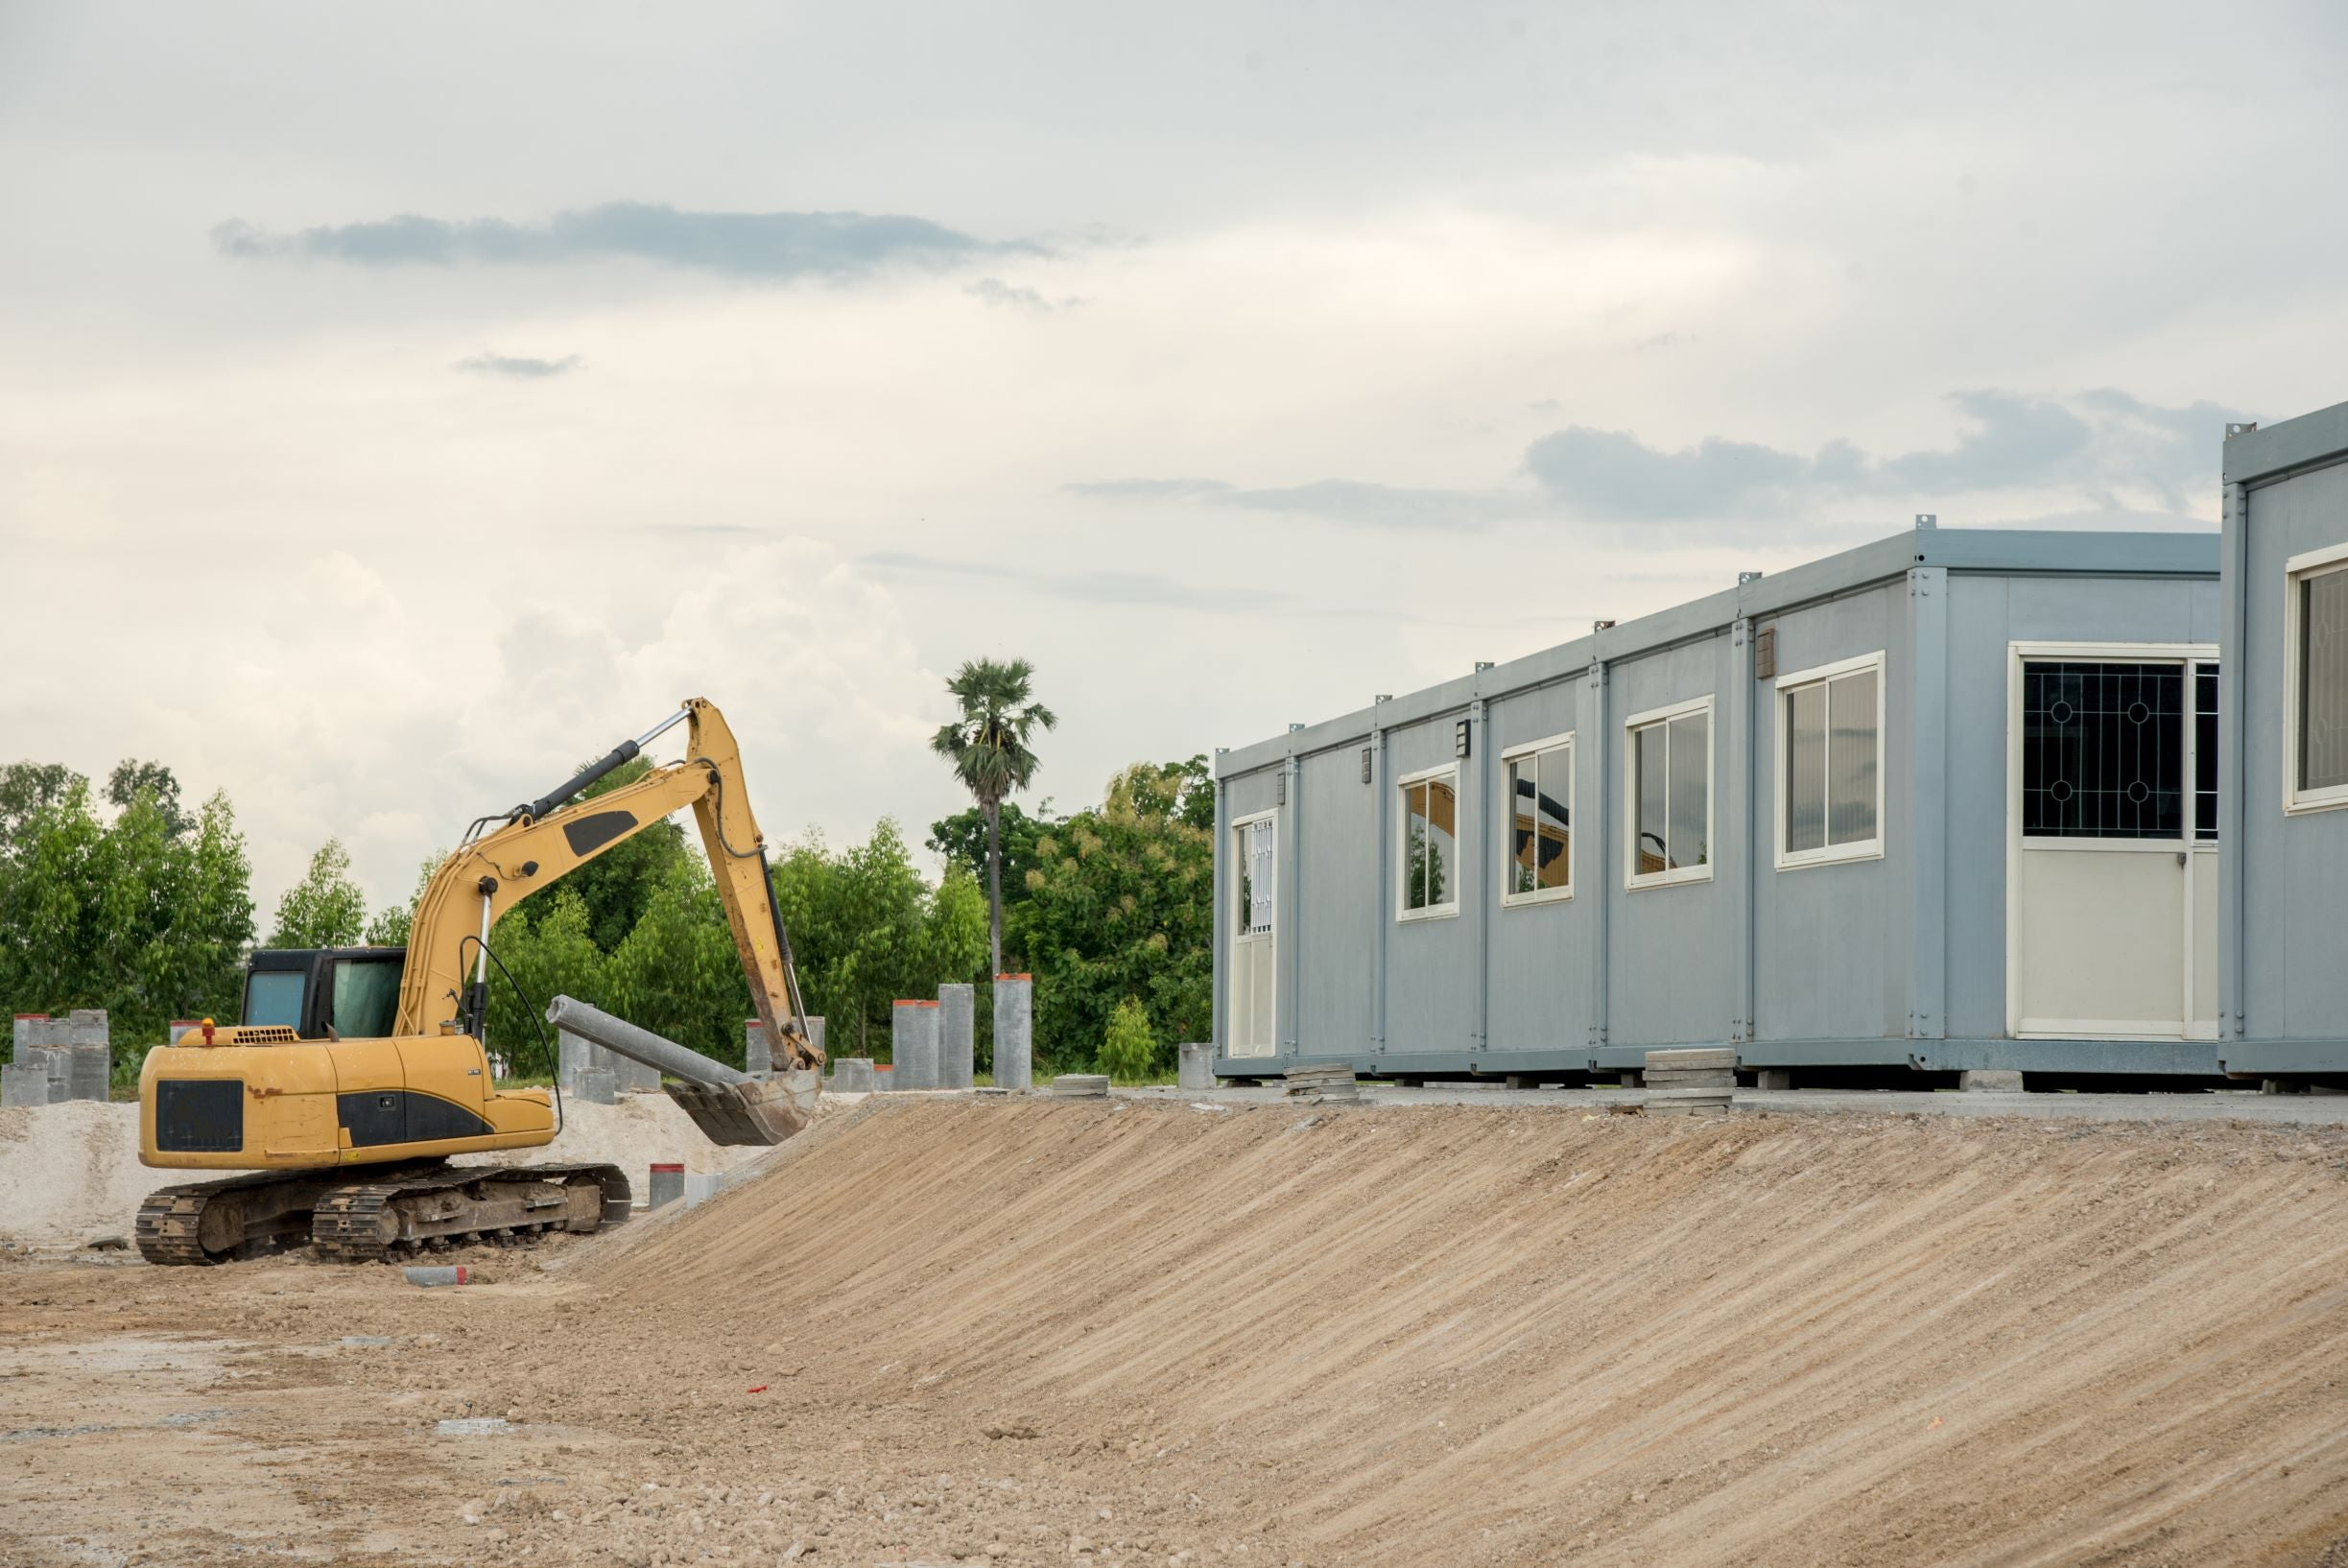 Shipping Containers for Storage in Construction